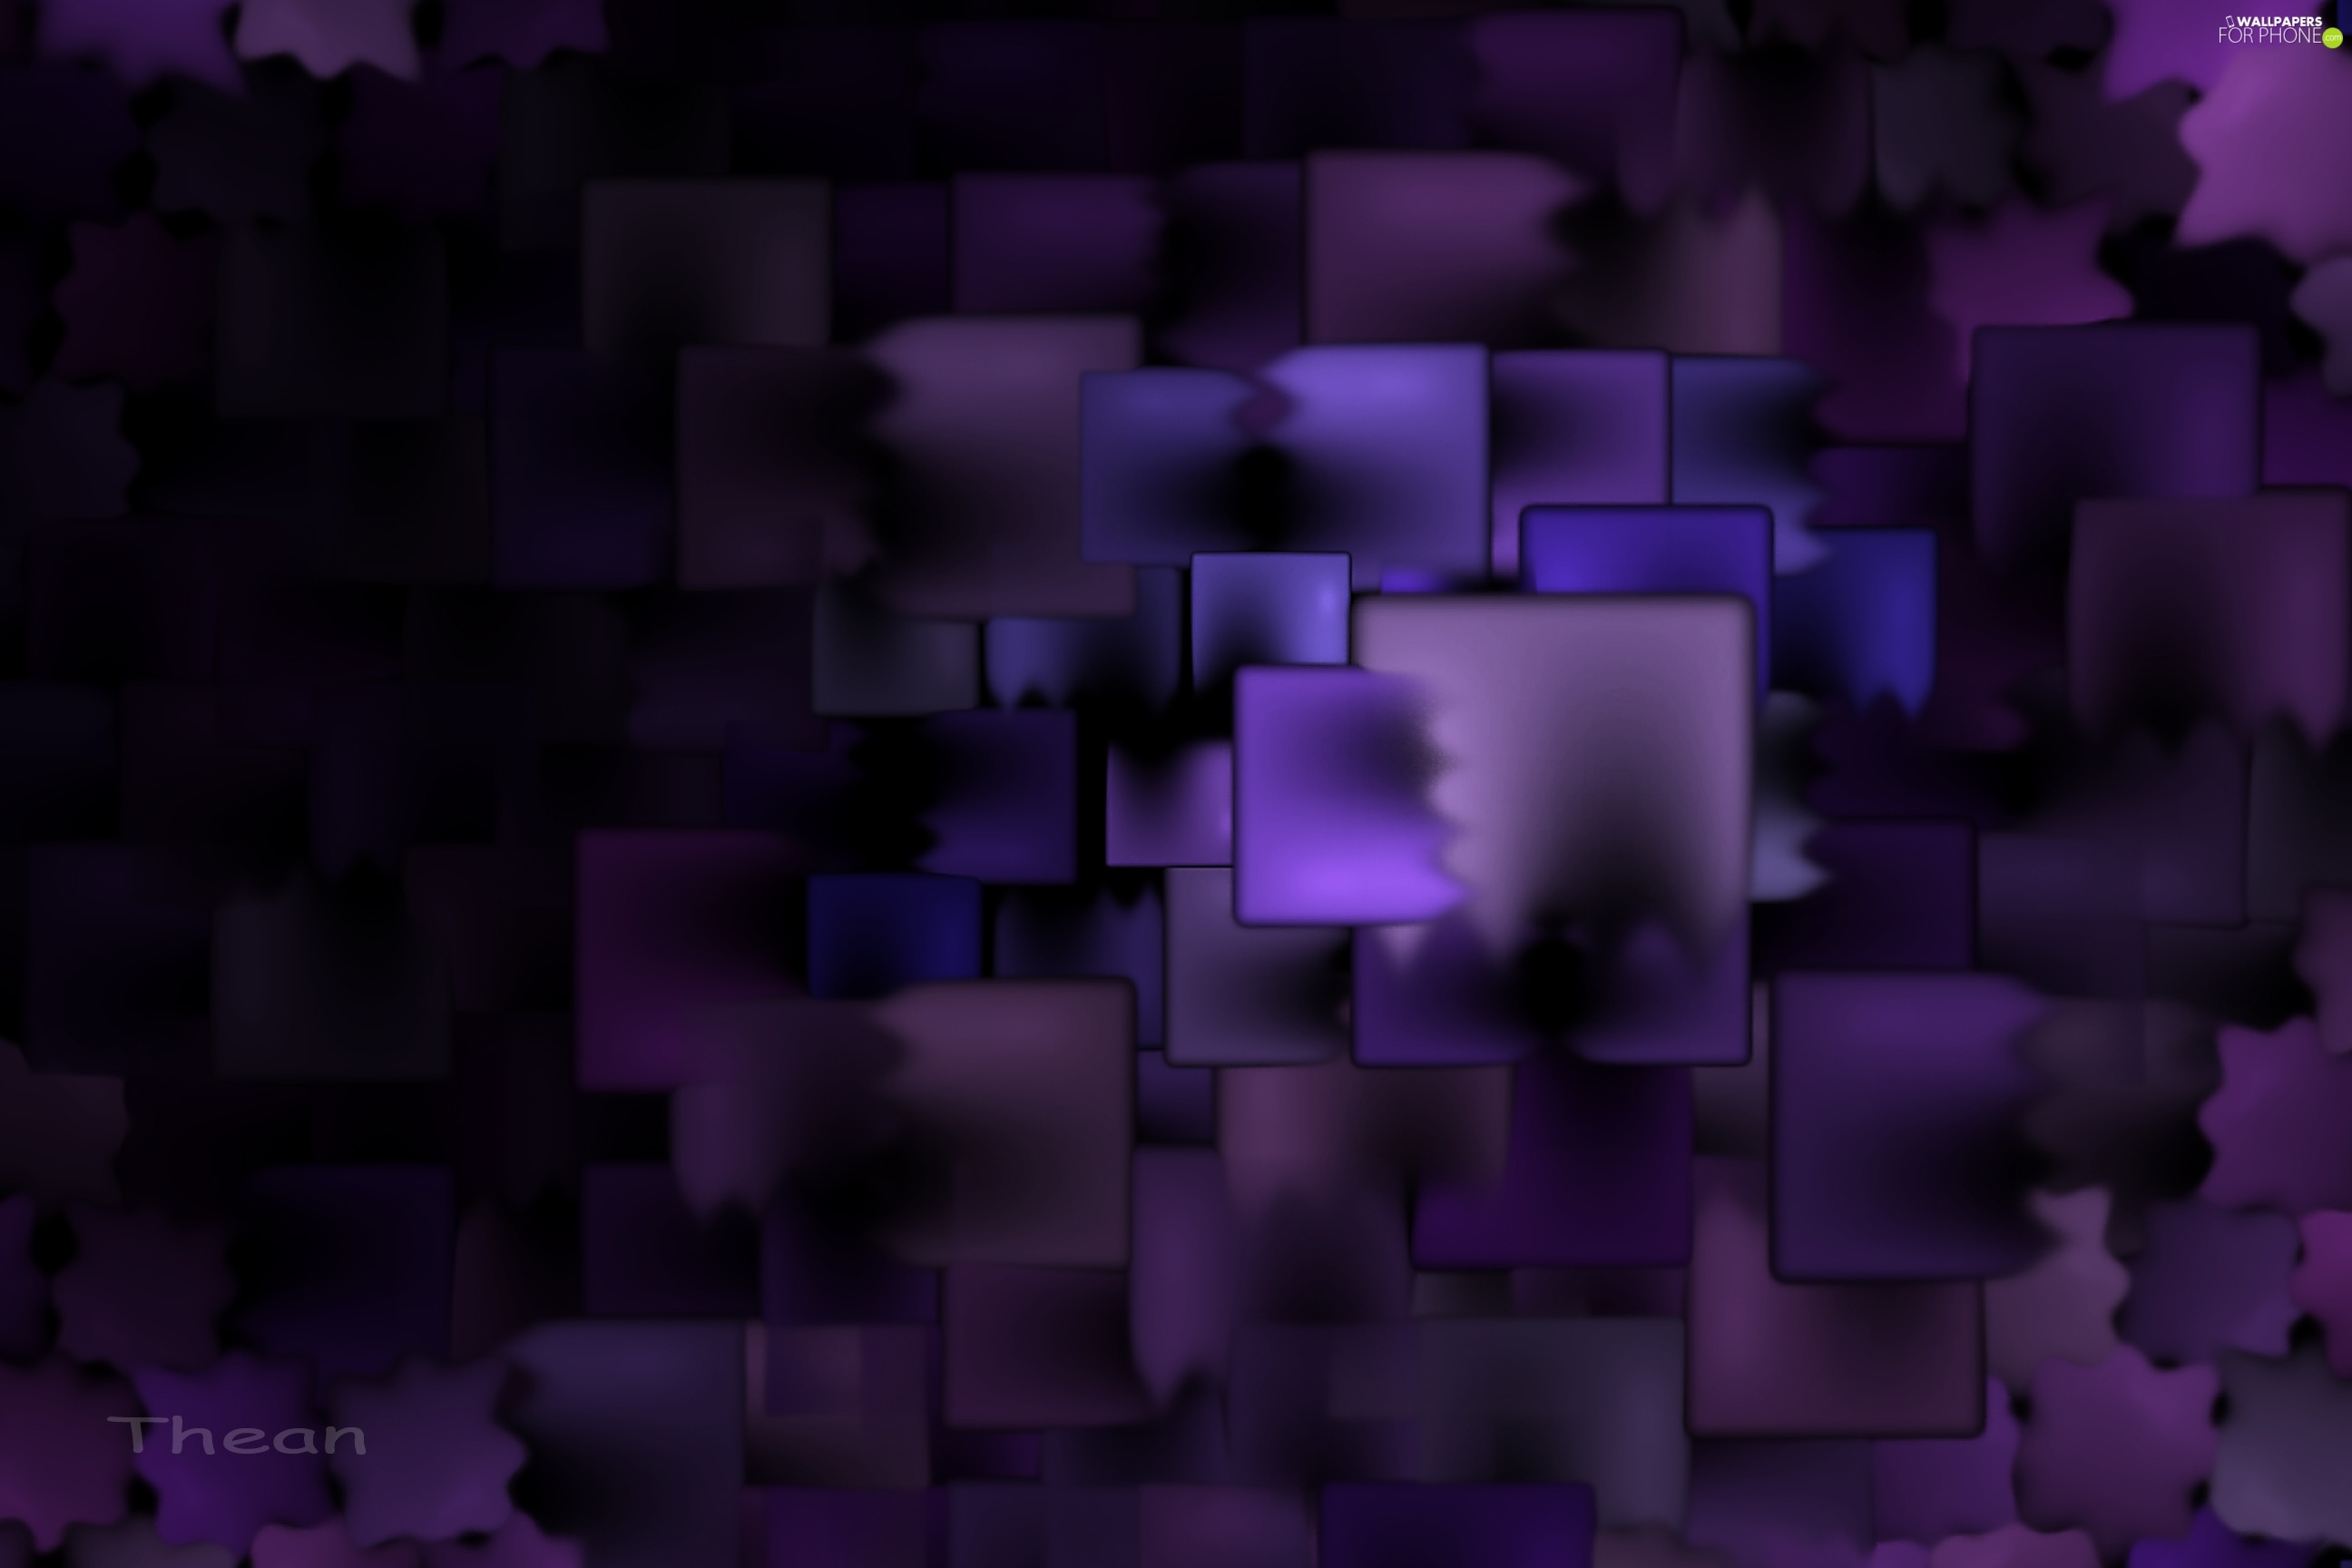 abstraction, Violet, graphics